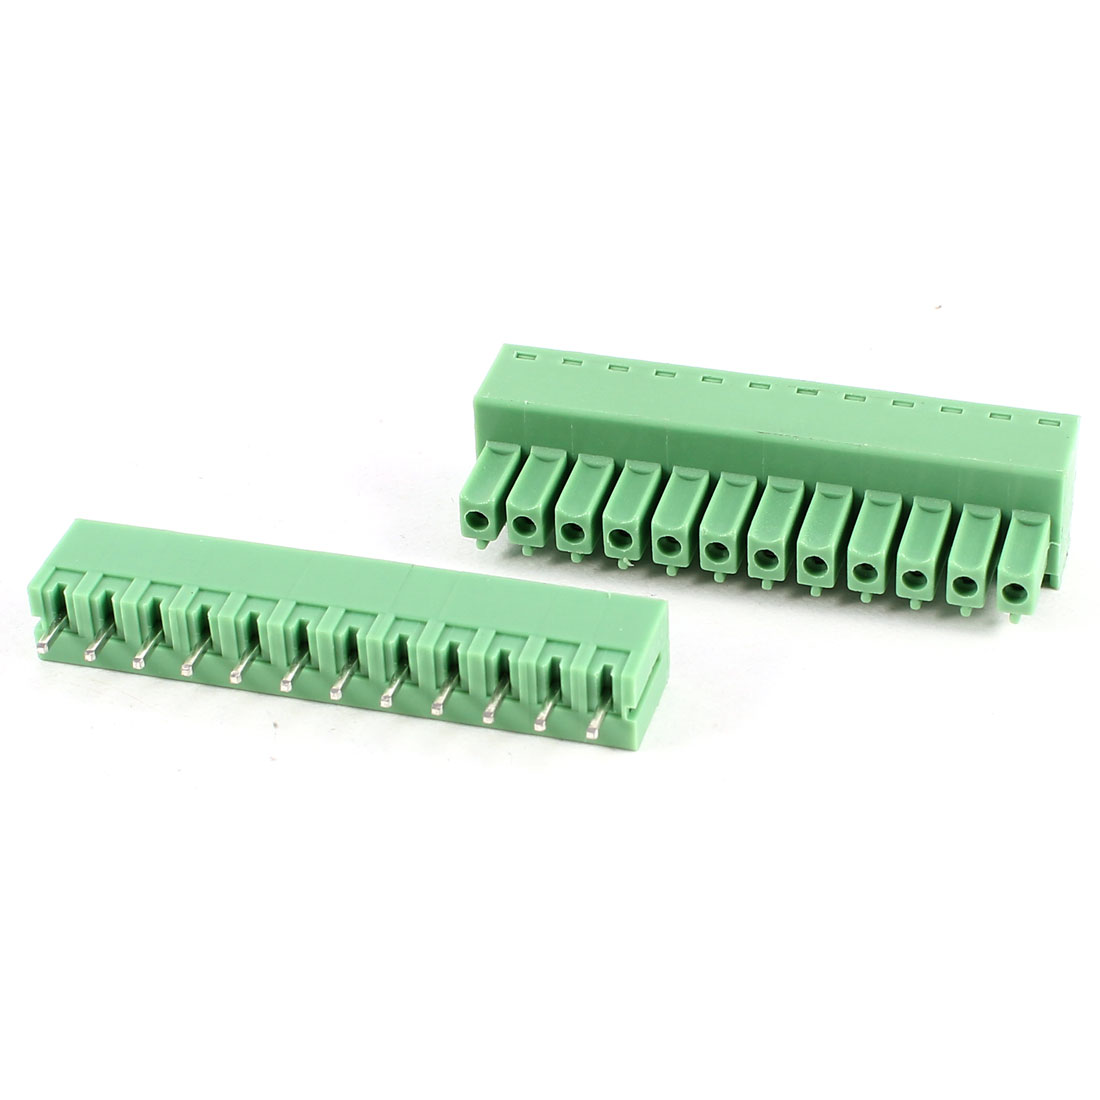 Green 12Pin 3.81mm Spacing PCB Screw Terminal Block Connector 300V 8A AWG22-16